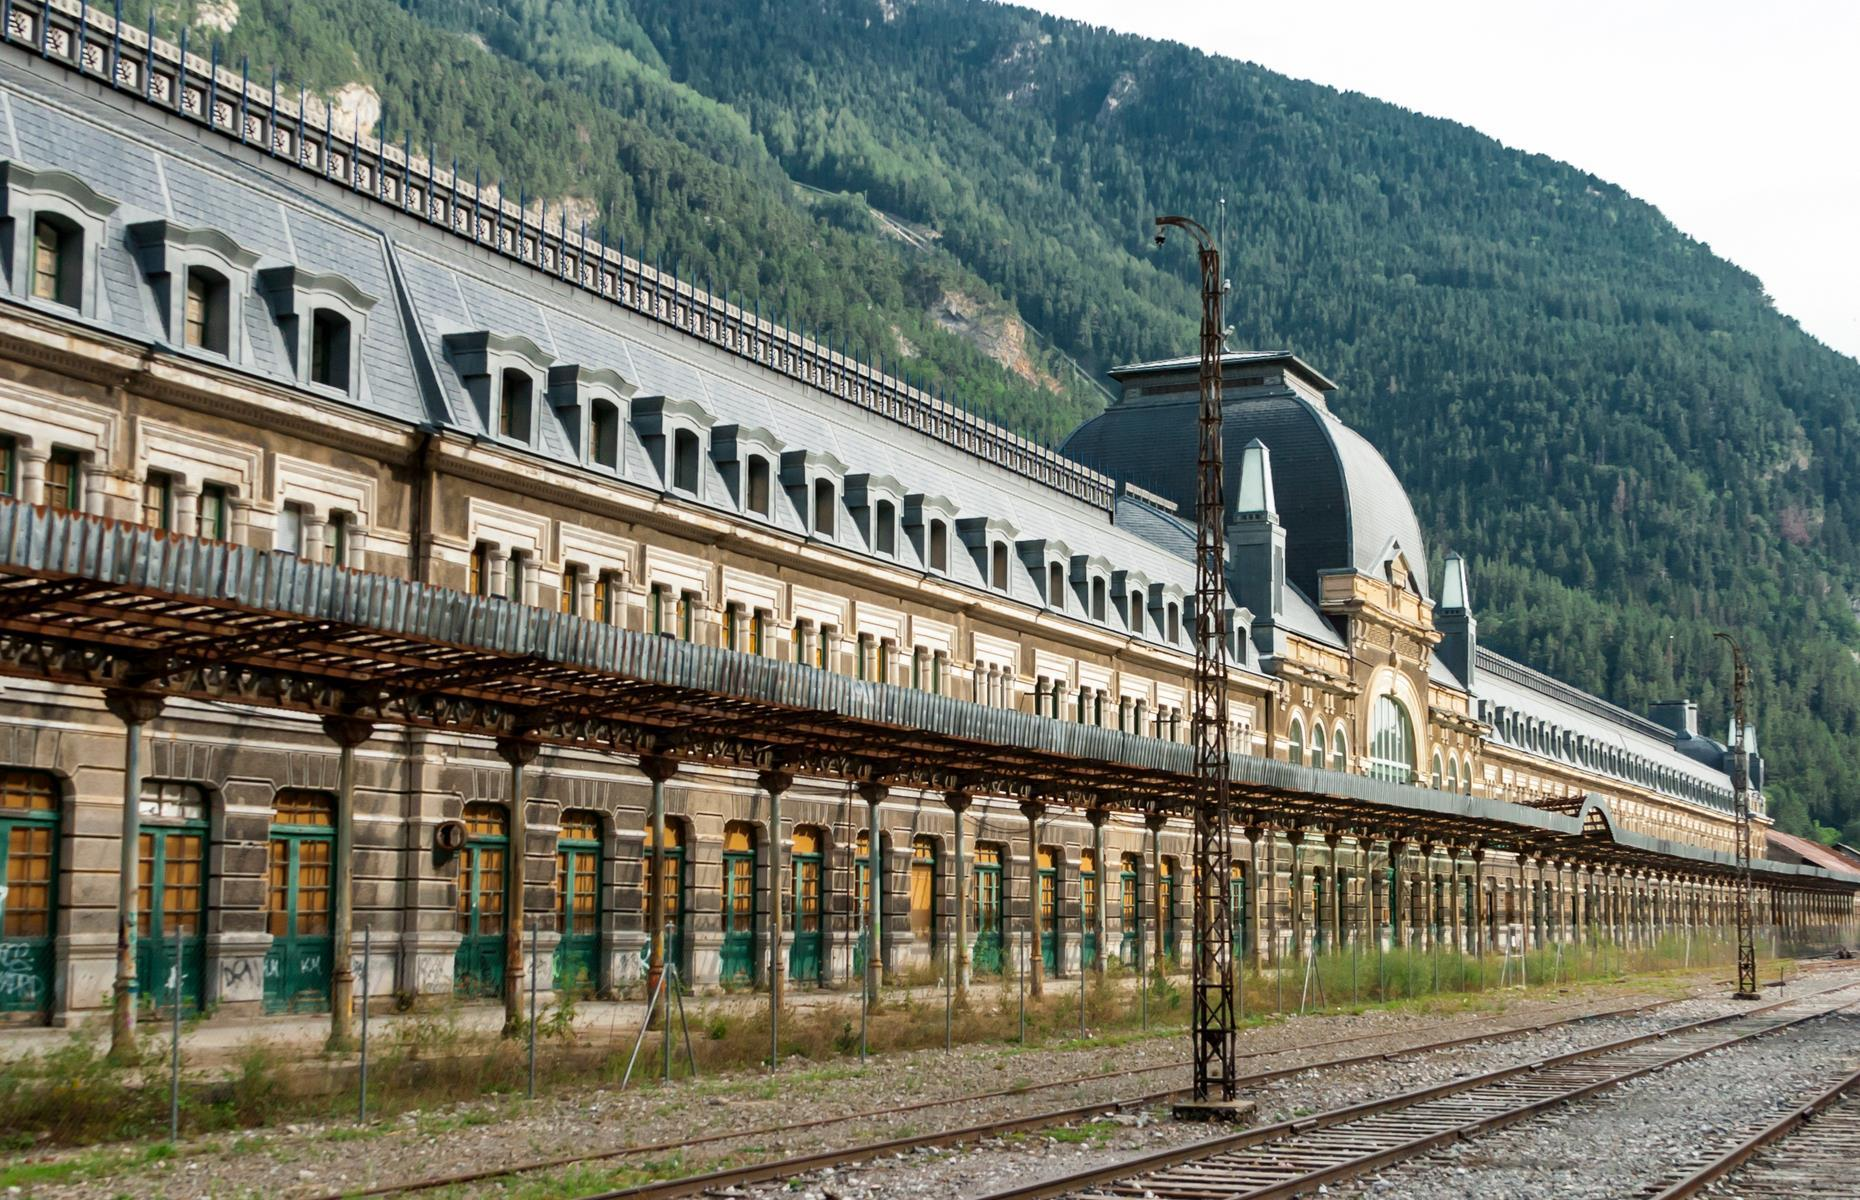 Slide 31 of 33: Once the second biggest train station in Europe, Canfranc International Railway Station sits high in the Pyrenees mountains in a small Spanish village on the border with France. It was jointly owned by the two countries and much celebrated, until it was beset by financial troubles and war. The station finally closed in the 1970s after a train derailed, crashing into a bridge. The opulent building was left to slowly decay.